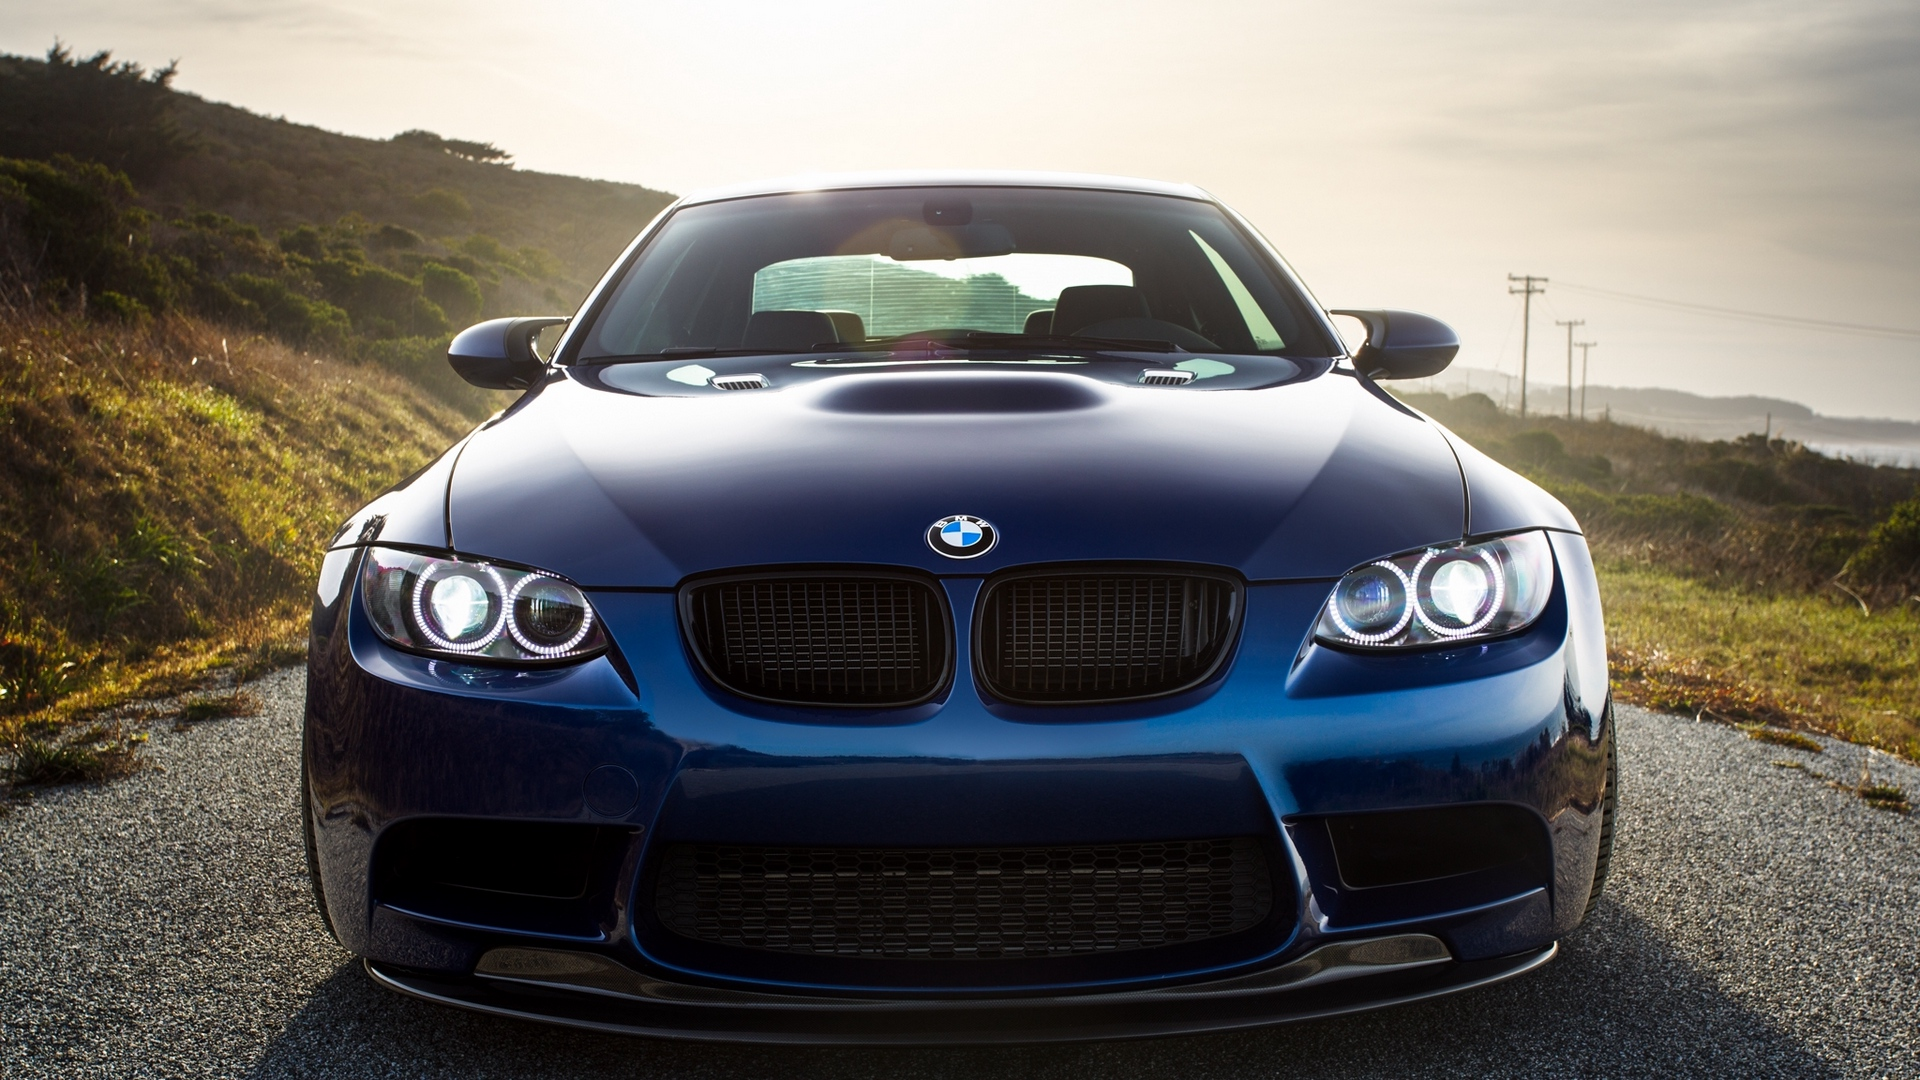 railway car,blue,m3,amobarbital sodium,patrician,auto,self possession,machine,blue air,e92,bmw,cracking,cars,amytal,cool,hd,railcar